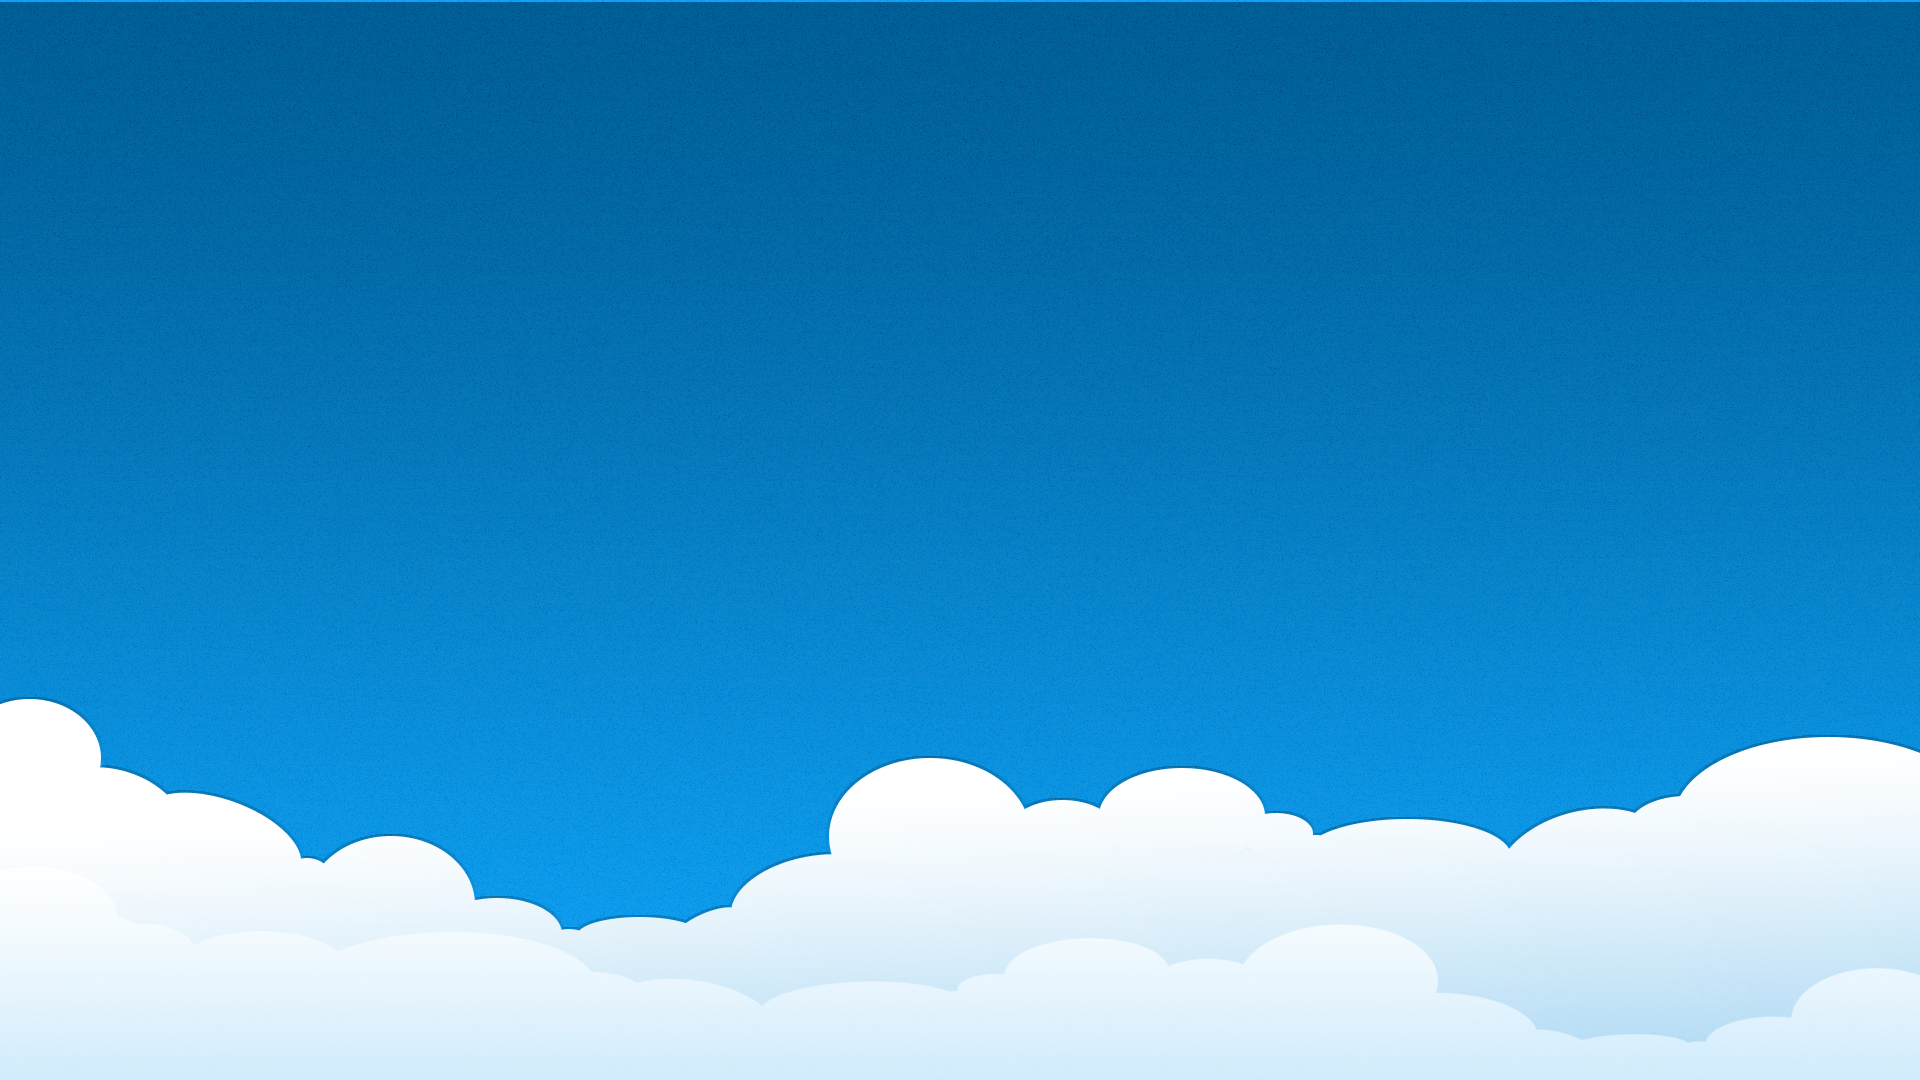 CLOUD WALLPAPER SIMPLE by FYPO CLOUD WALLPAPER SIMPLE by FYPO